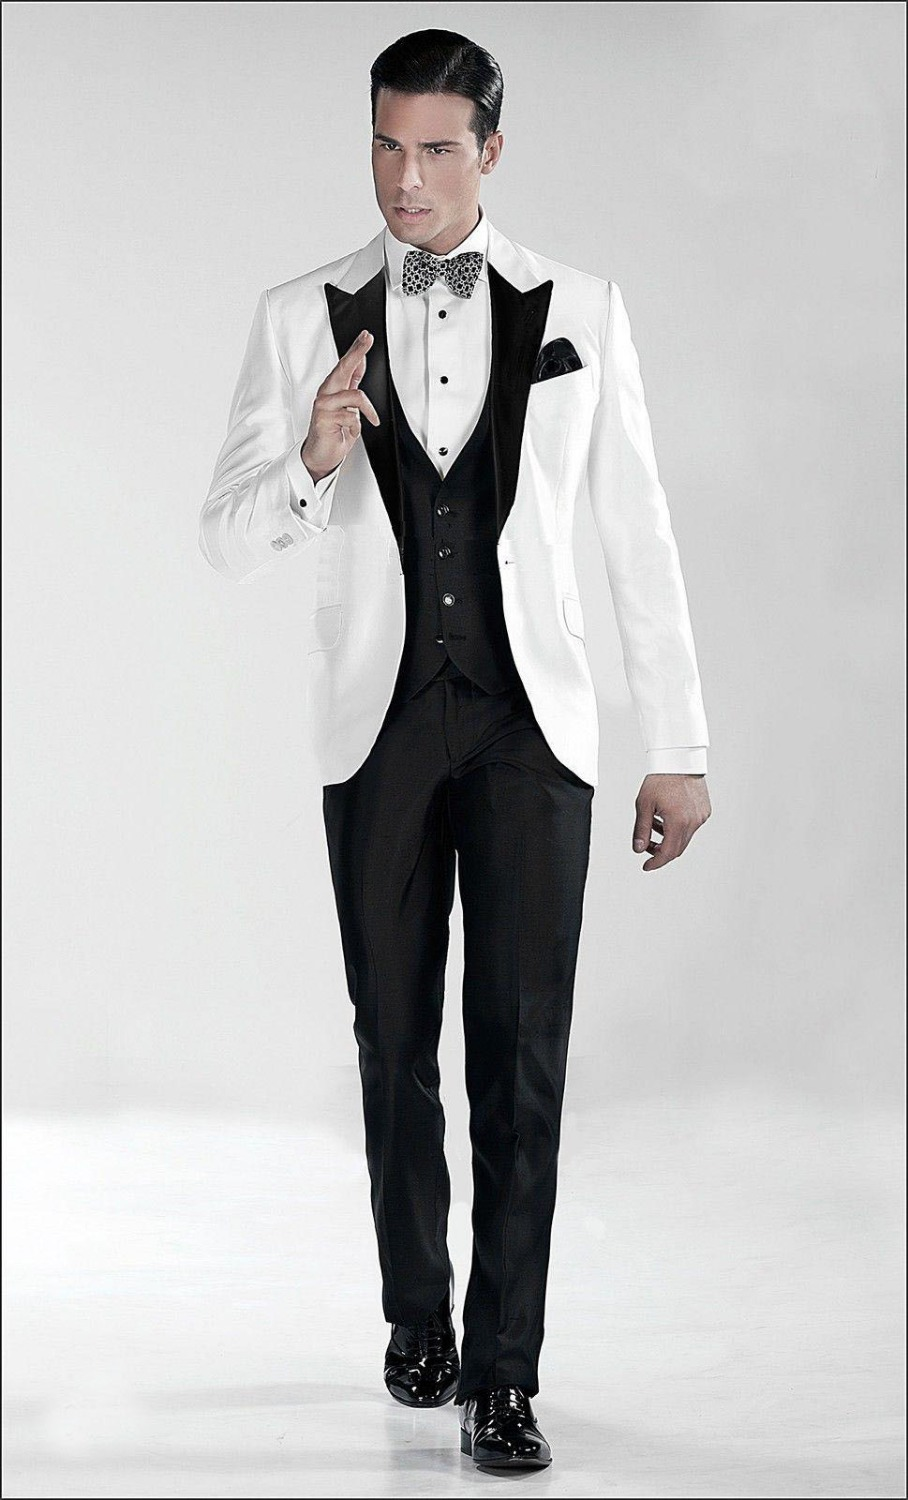 Wedding Suit Men Fashion Designer Groom Tuxedo Dinner Coat Jacket Blazer Trouser Suits Pants Vest In From S Clothing